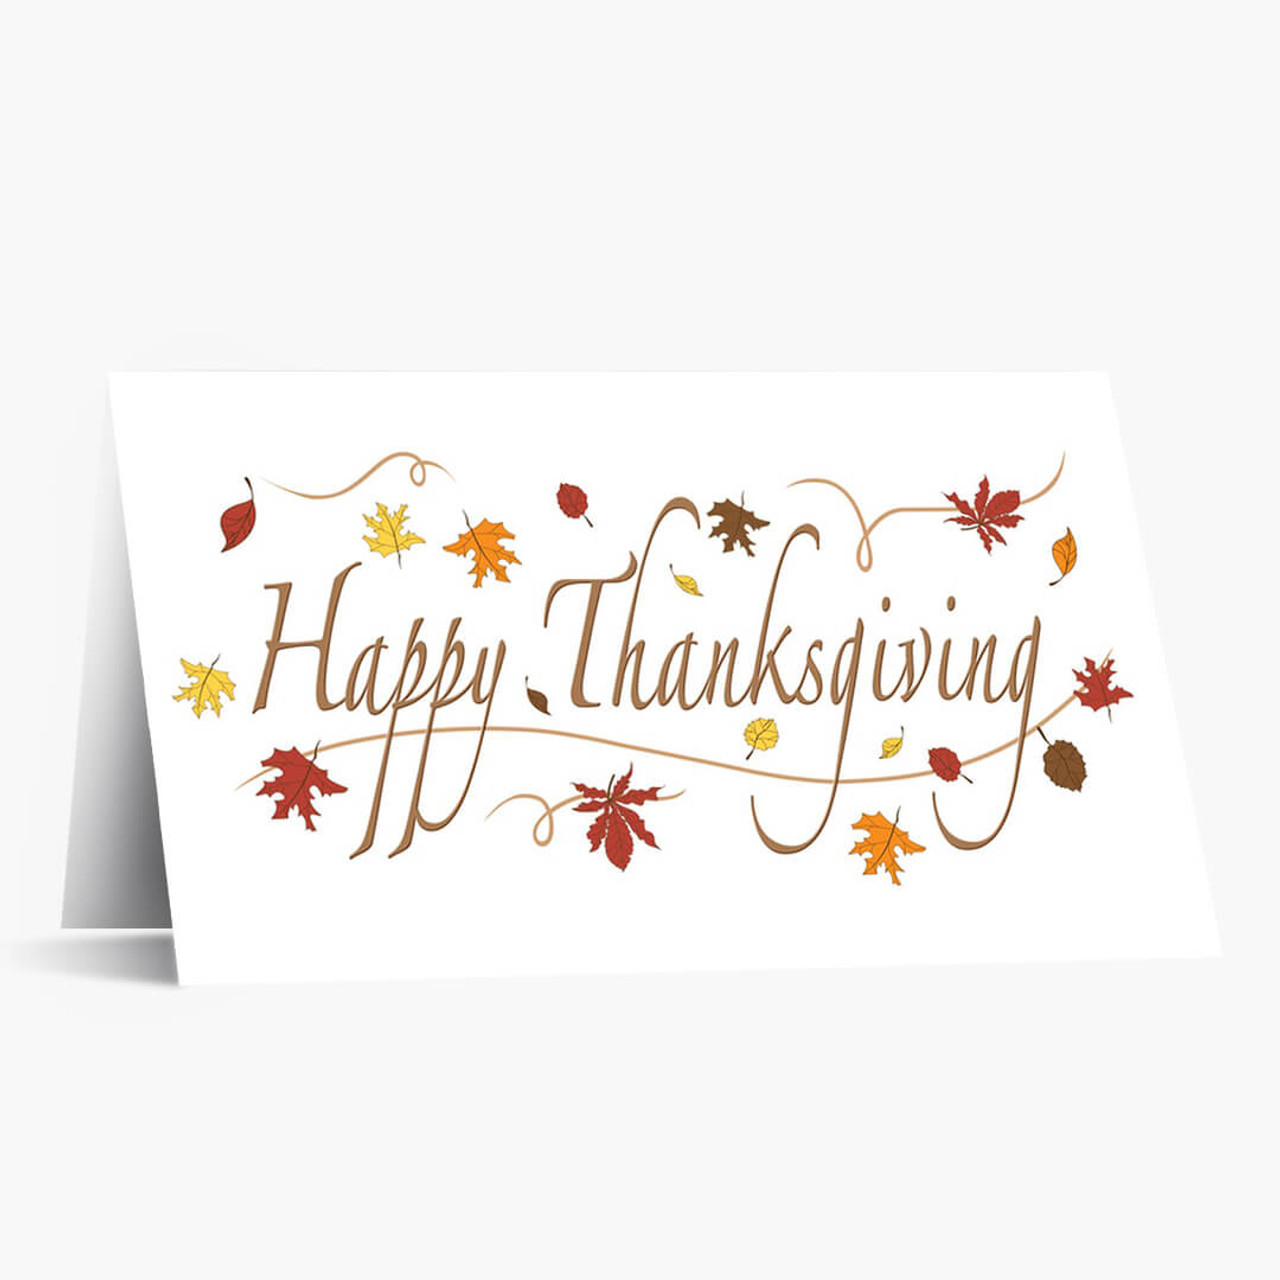 Happy Thanksgiving Foliage Card